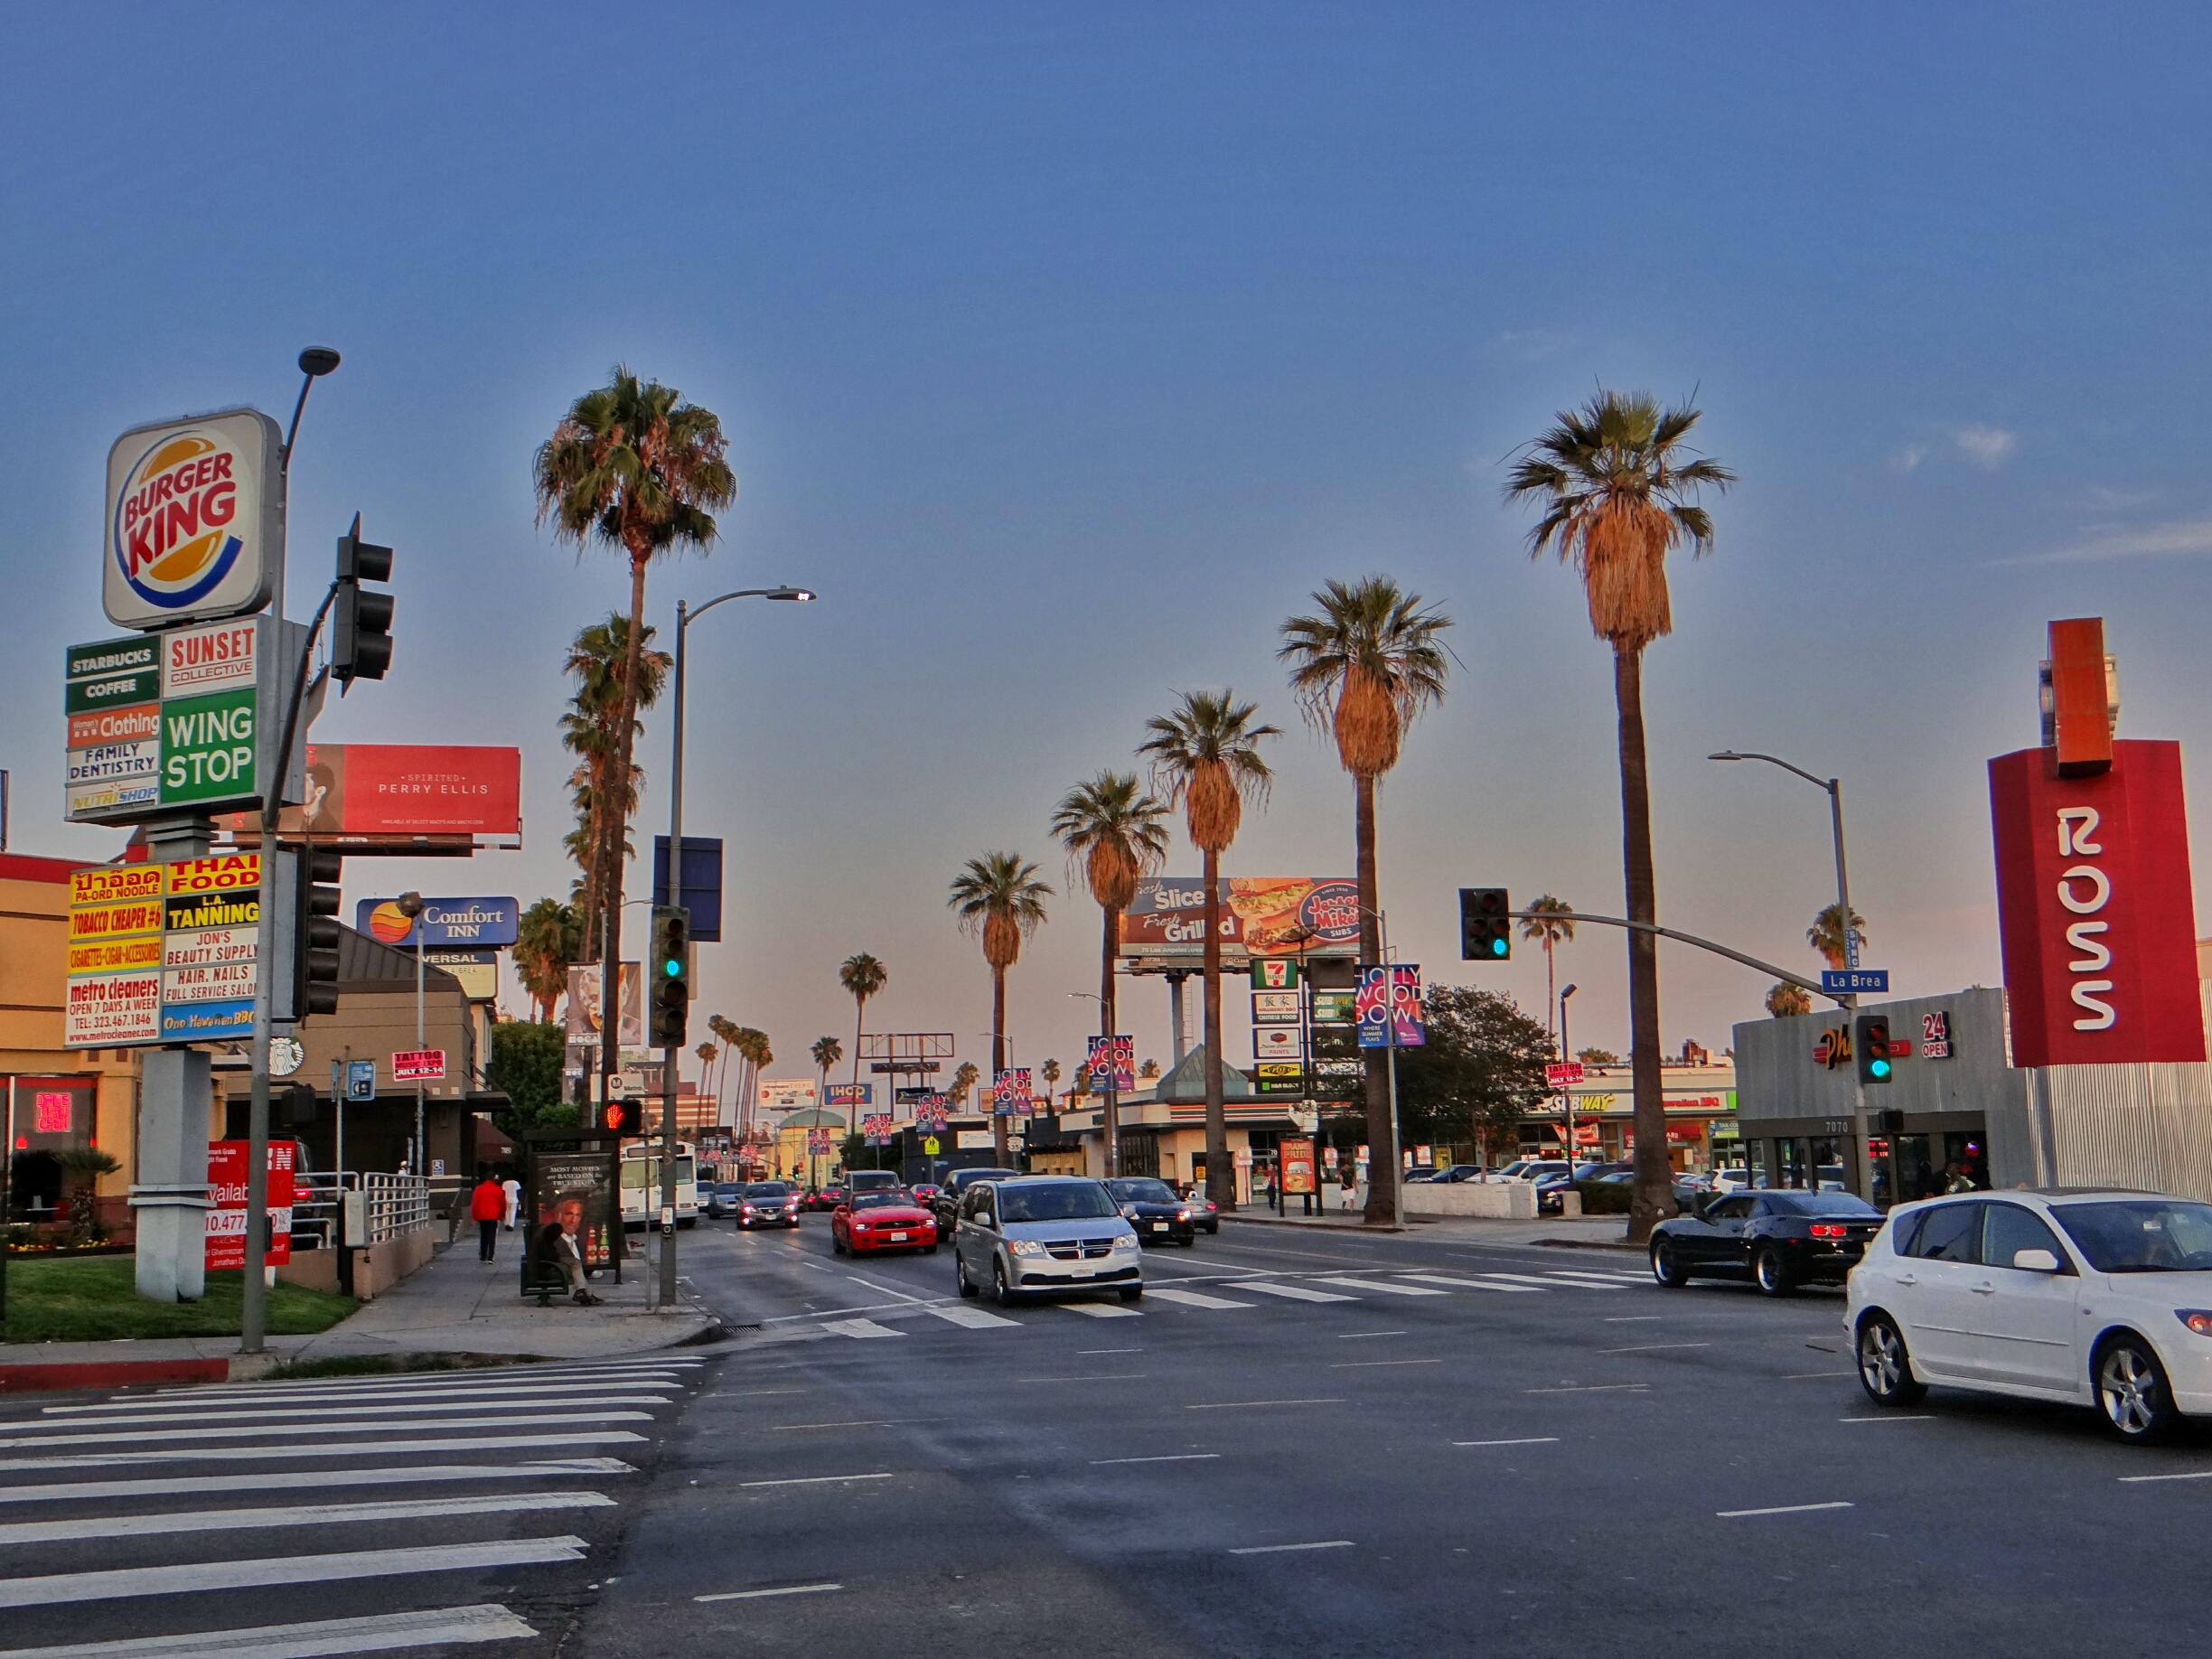 Los angeles worst place i ever visited world wanderista for Is la a city